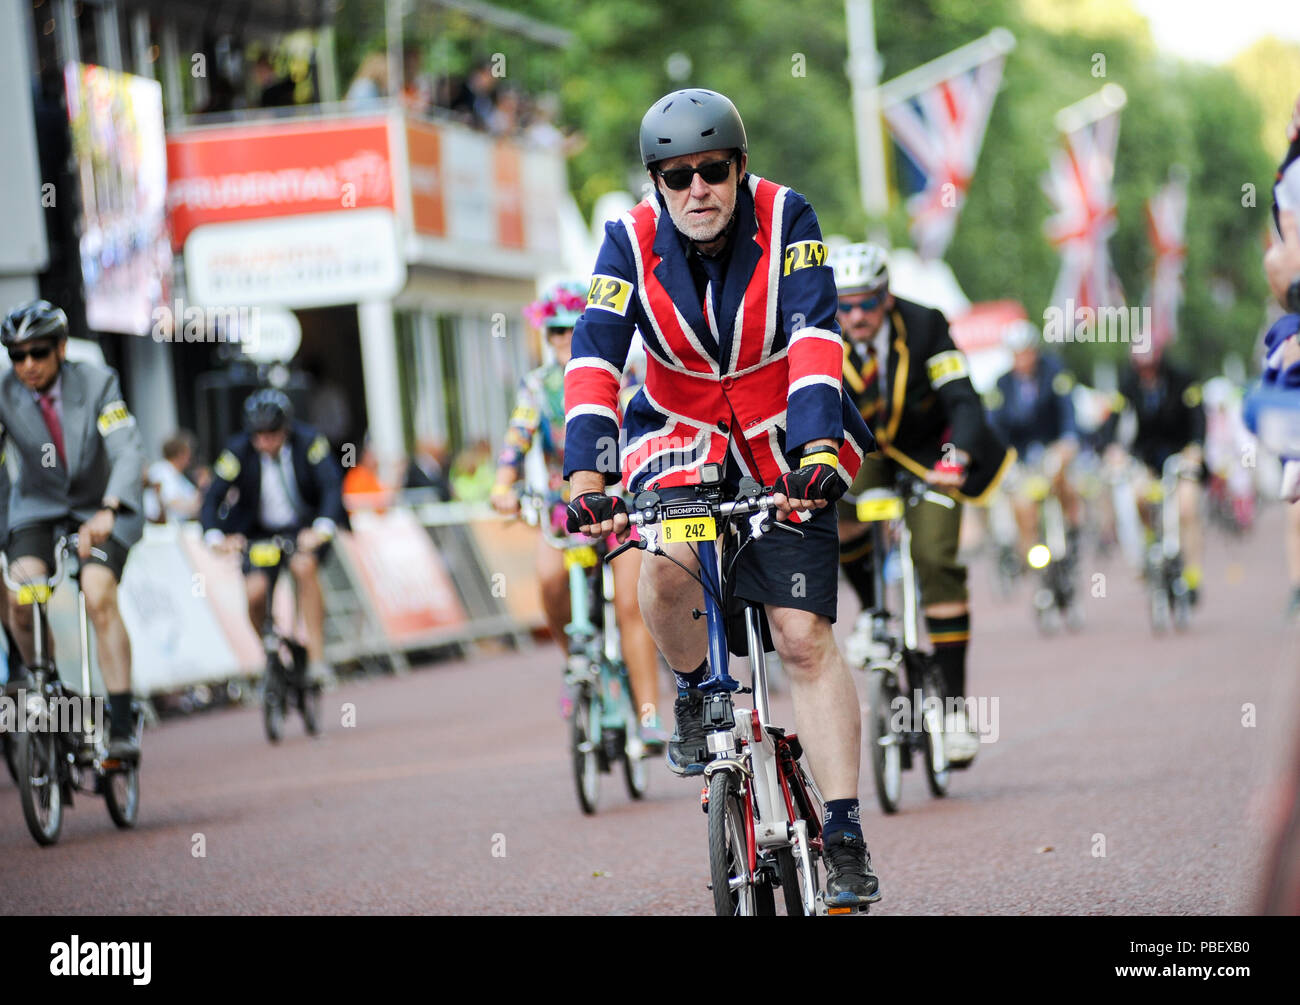 Central London, UK, 28th July 2018. Riders race down The Mall during the Brompton World Championship Final, part of the Prudential RideLondon Festival of Cycling weekend. This unique and hugely enjoyable event takes the form of a Le Mans style start as 500+ smartly-dressed competitors make a mad dash to unfold their bikes before setting off on the famous eight lap circuit around St James' Park. @ David Partridge / Alamy Live News Stock Photo